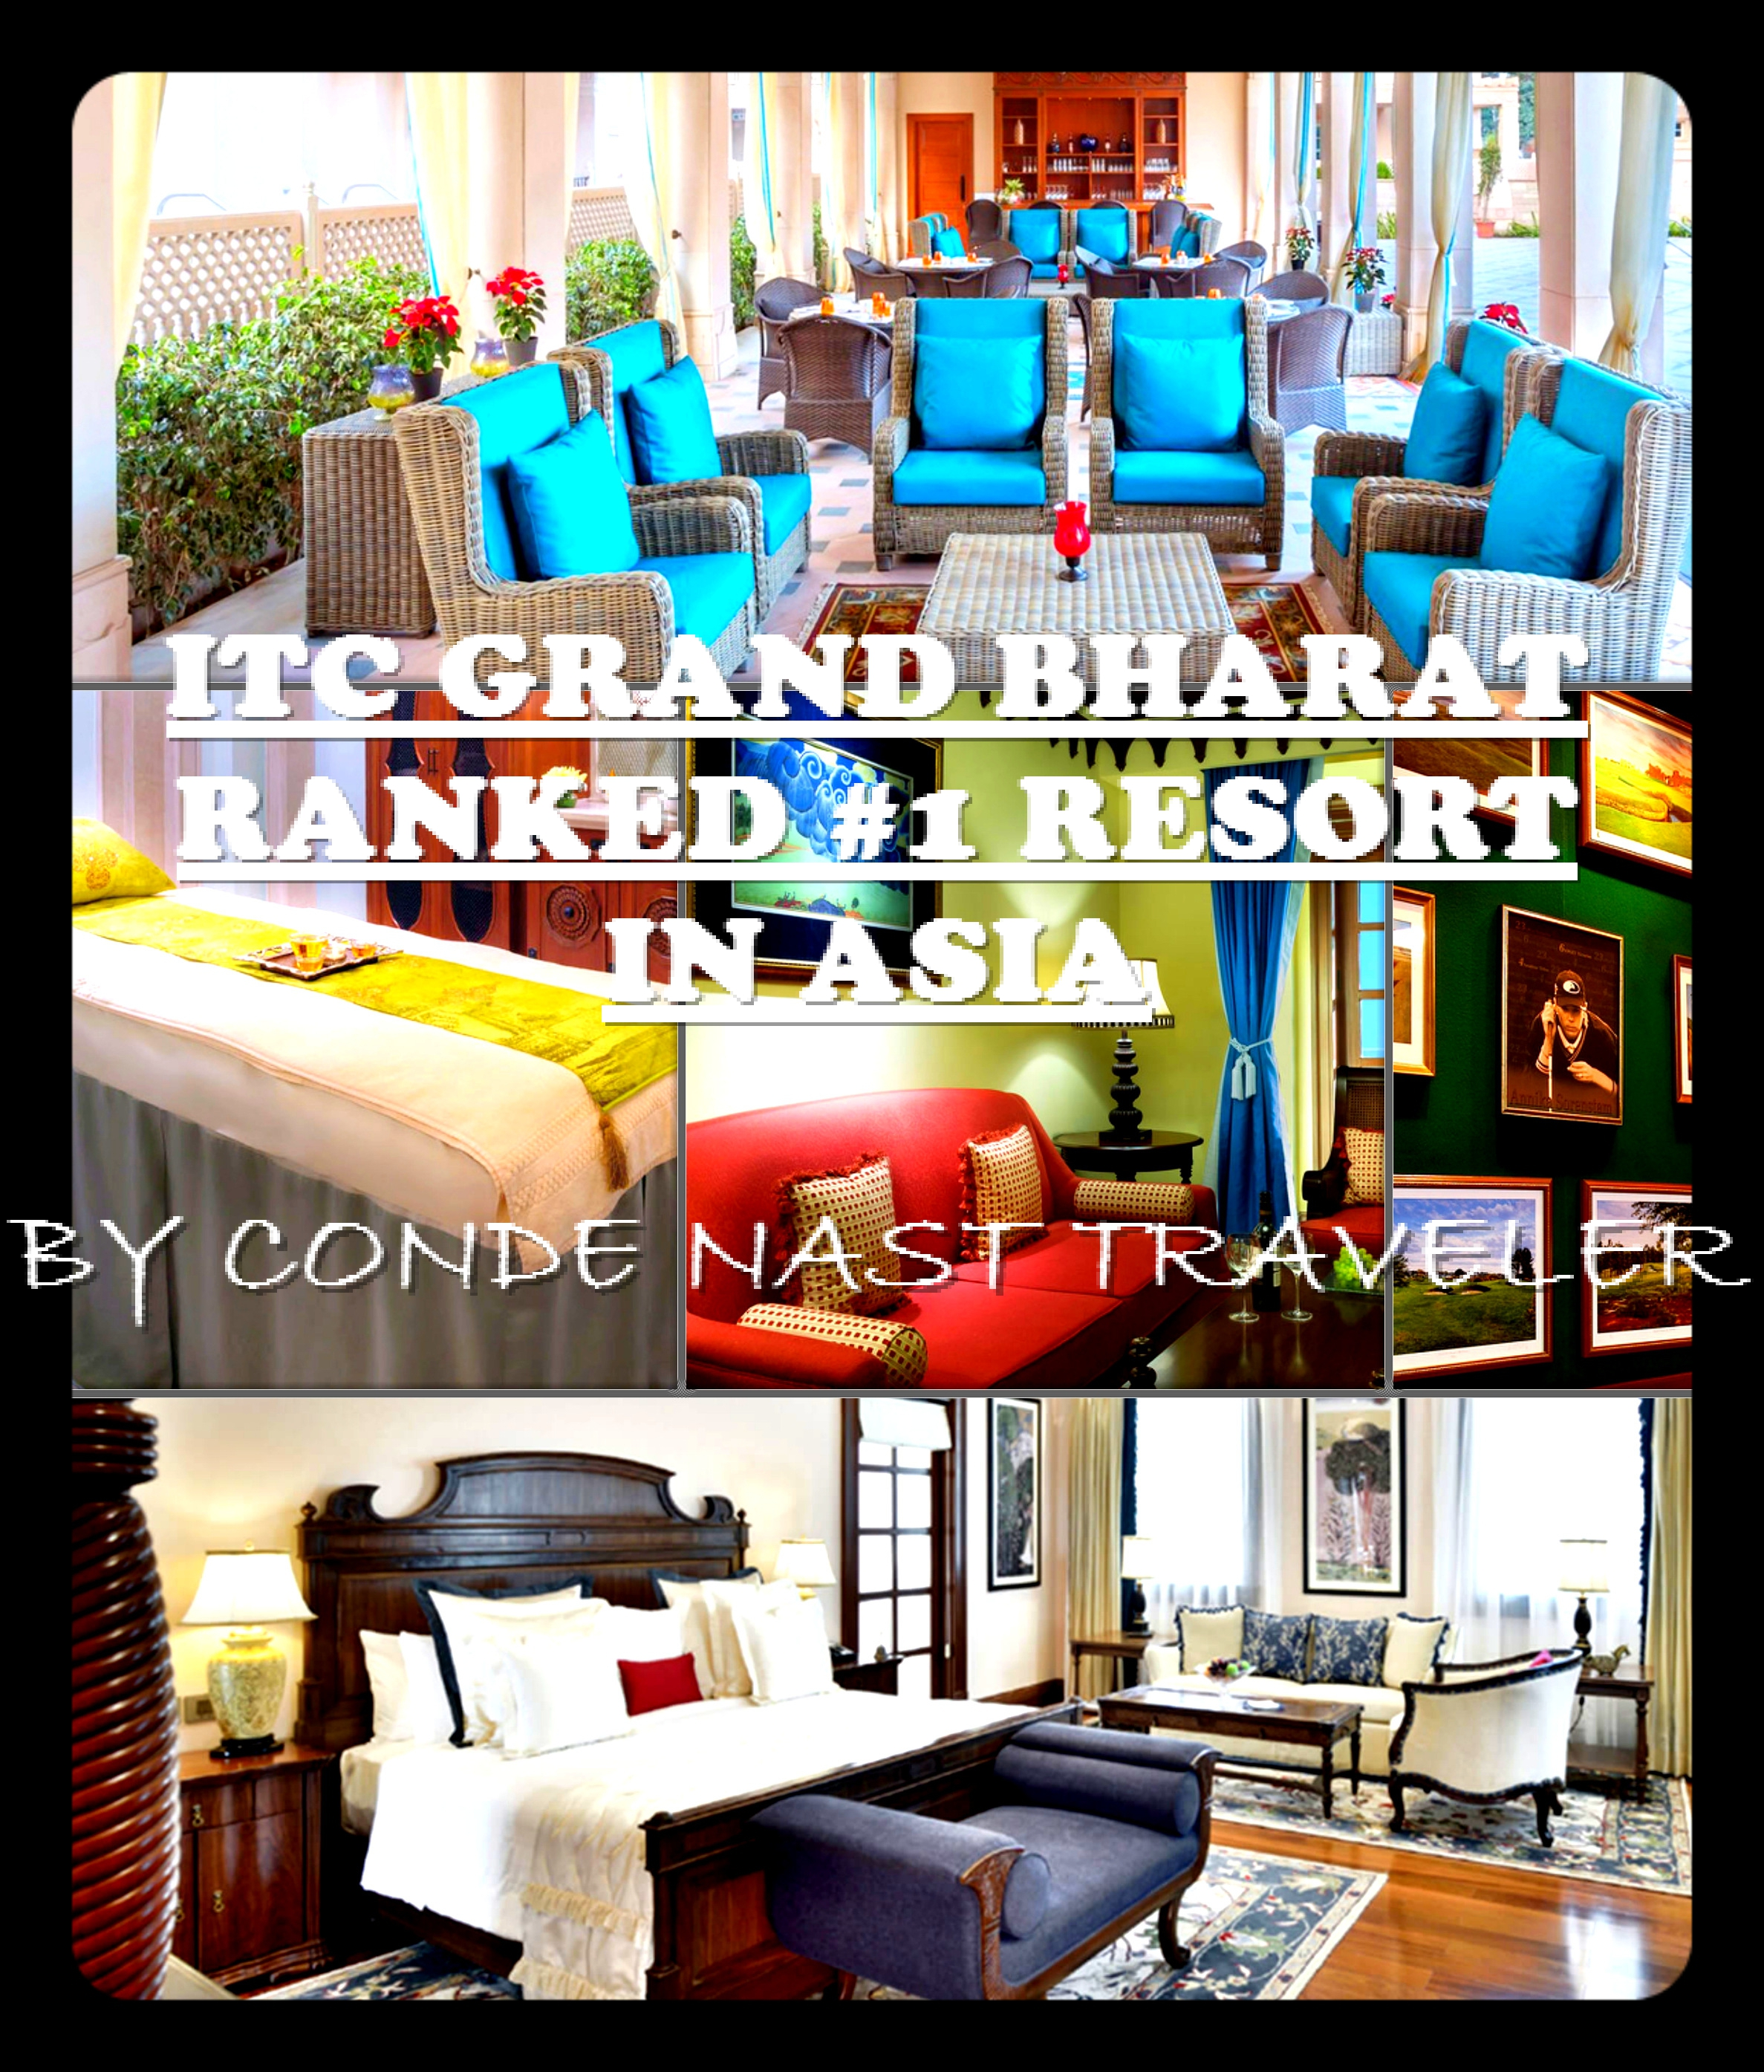 ITC Grand Bharat wins Best Resort in Asia from Conde Nast USA